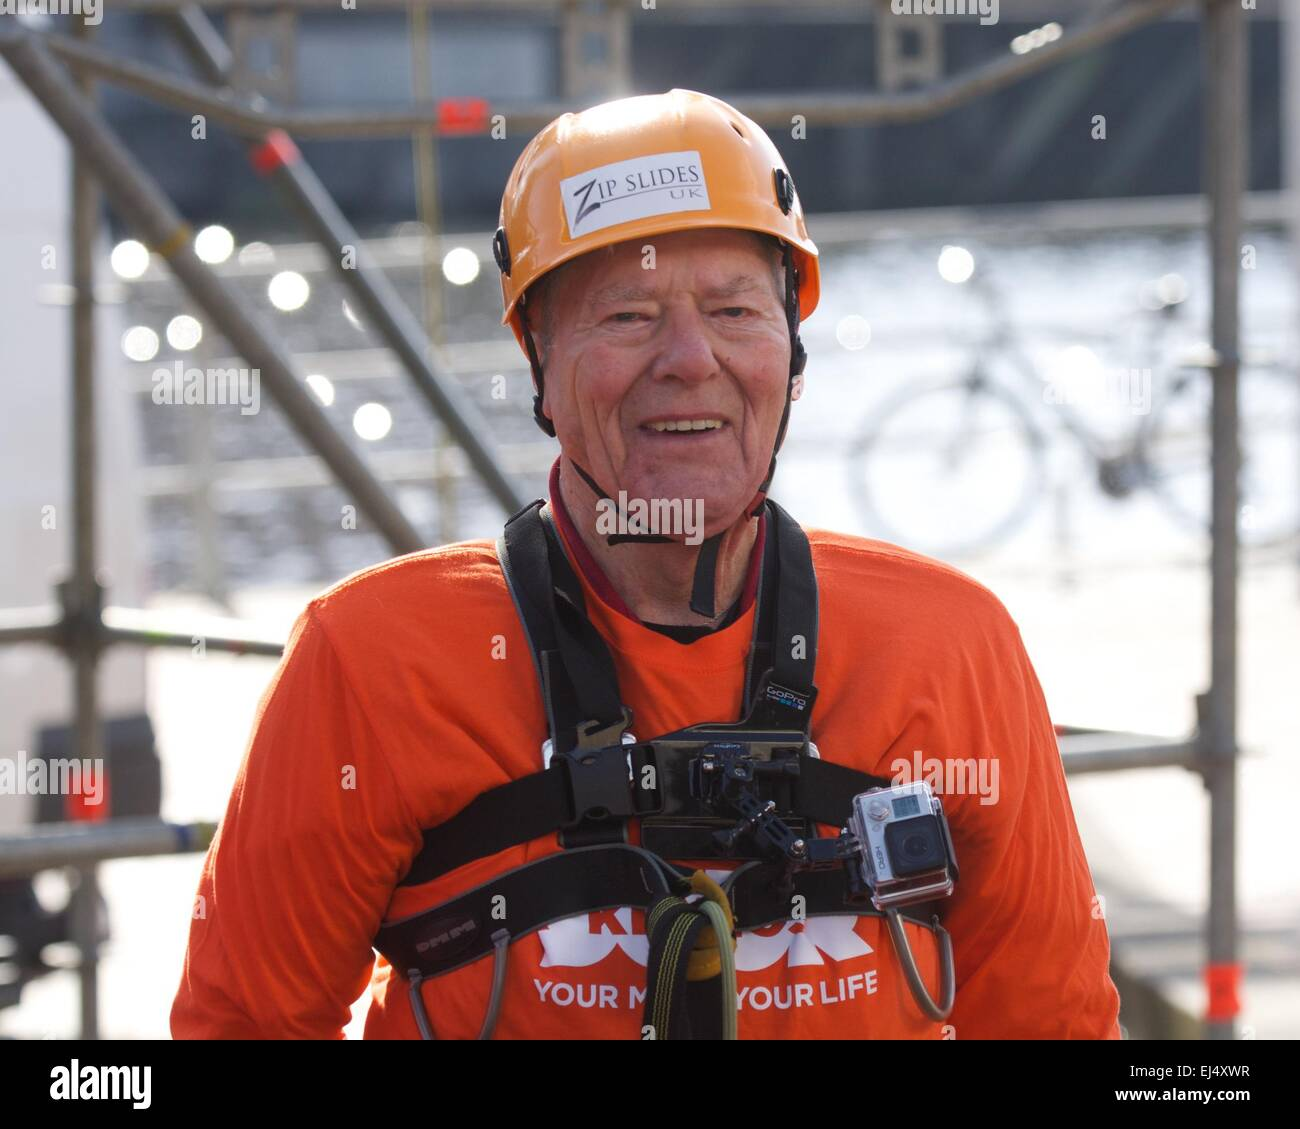 Salford, Greater Manchester UK  21st  March  2015 93 year-old Frank Tolley is all smiles after hiszip wire across Stock Photo